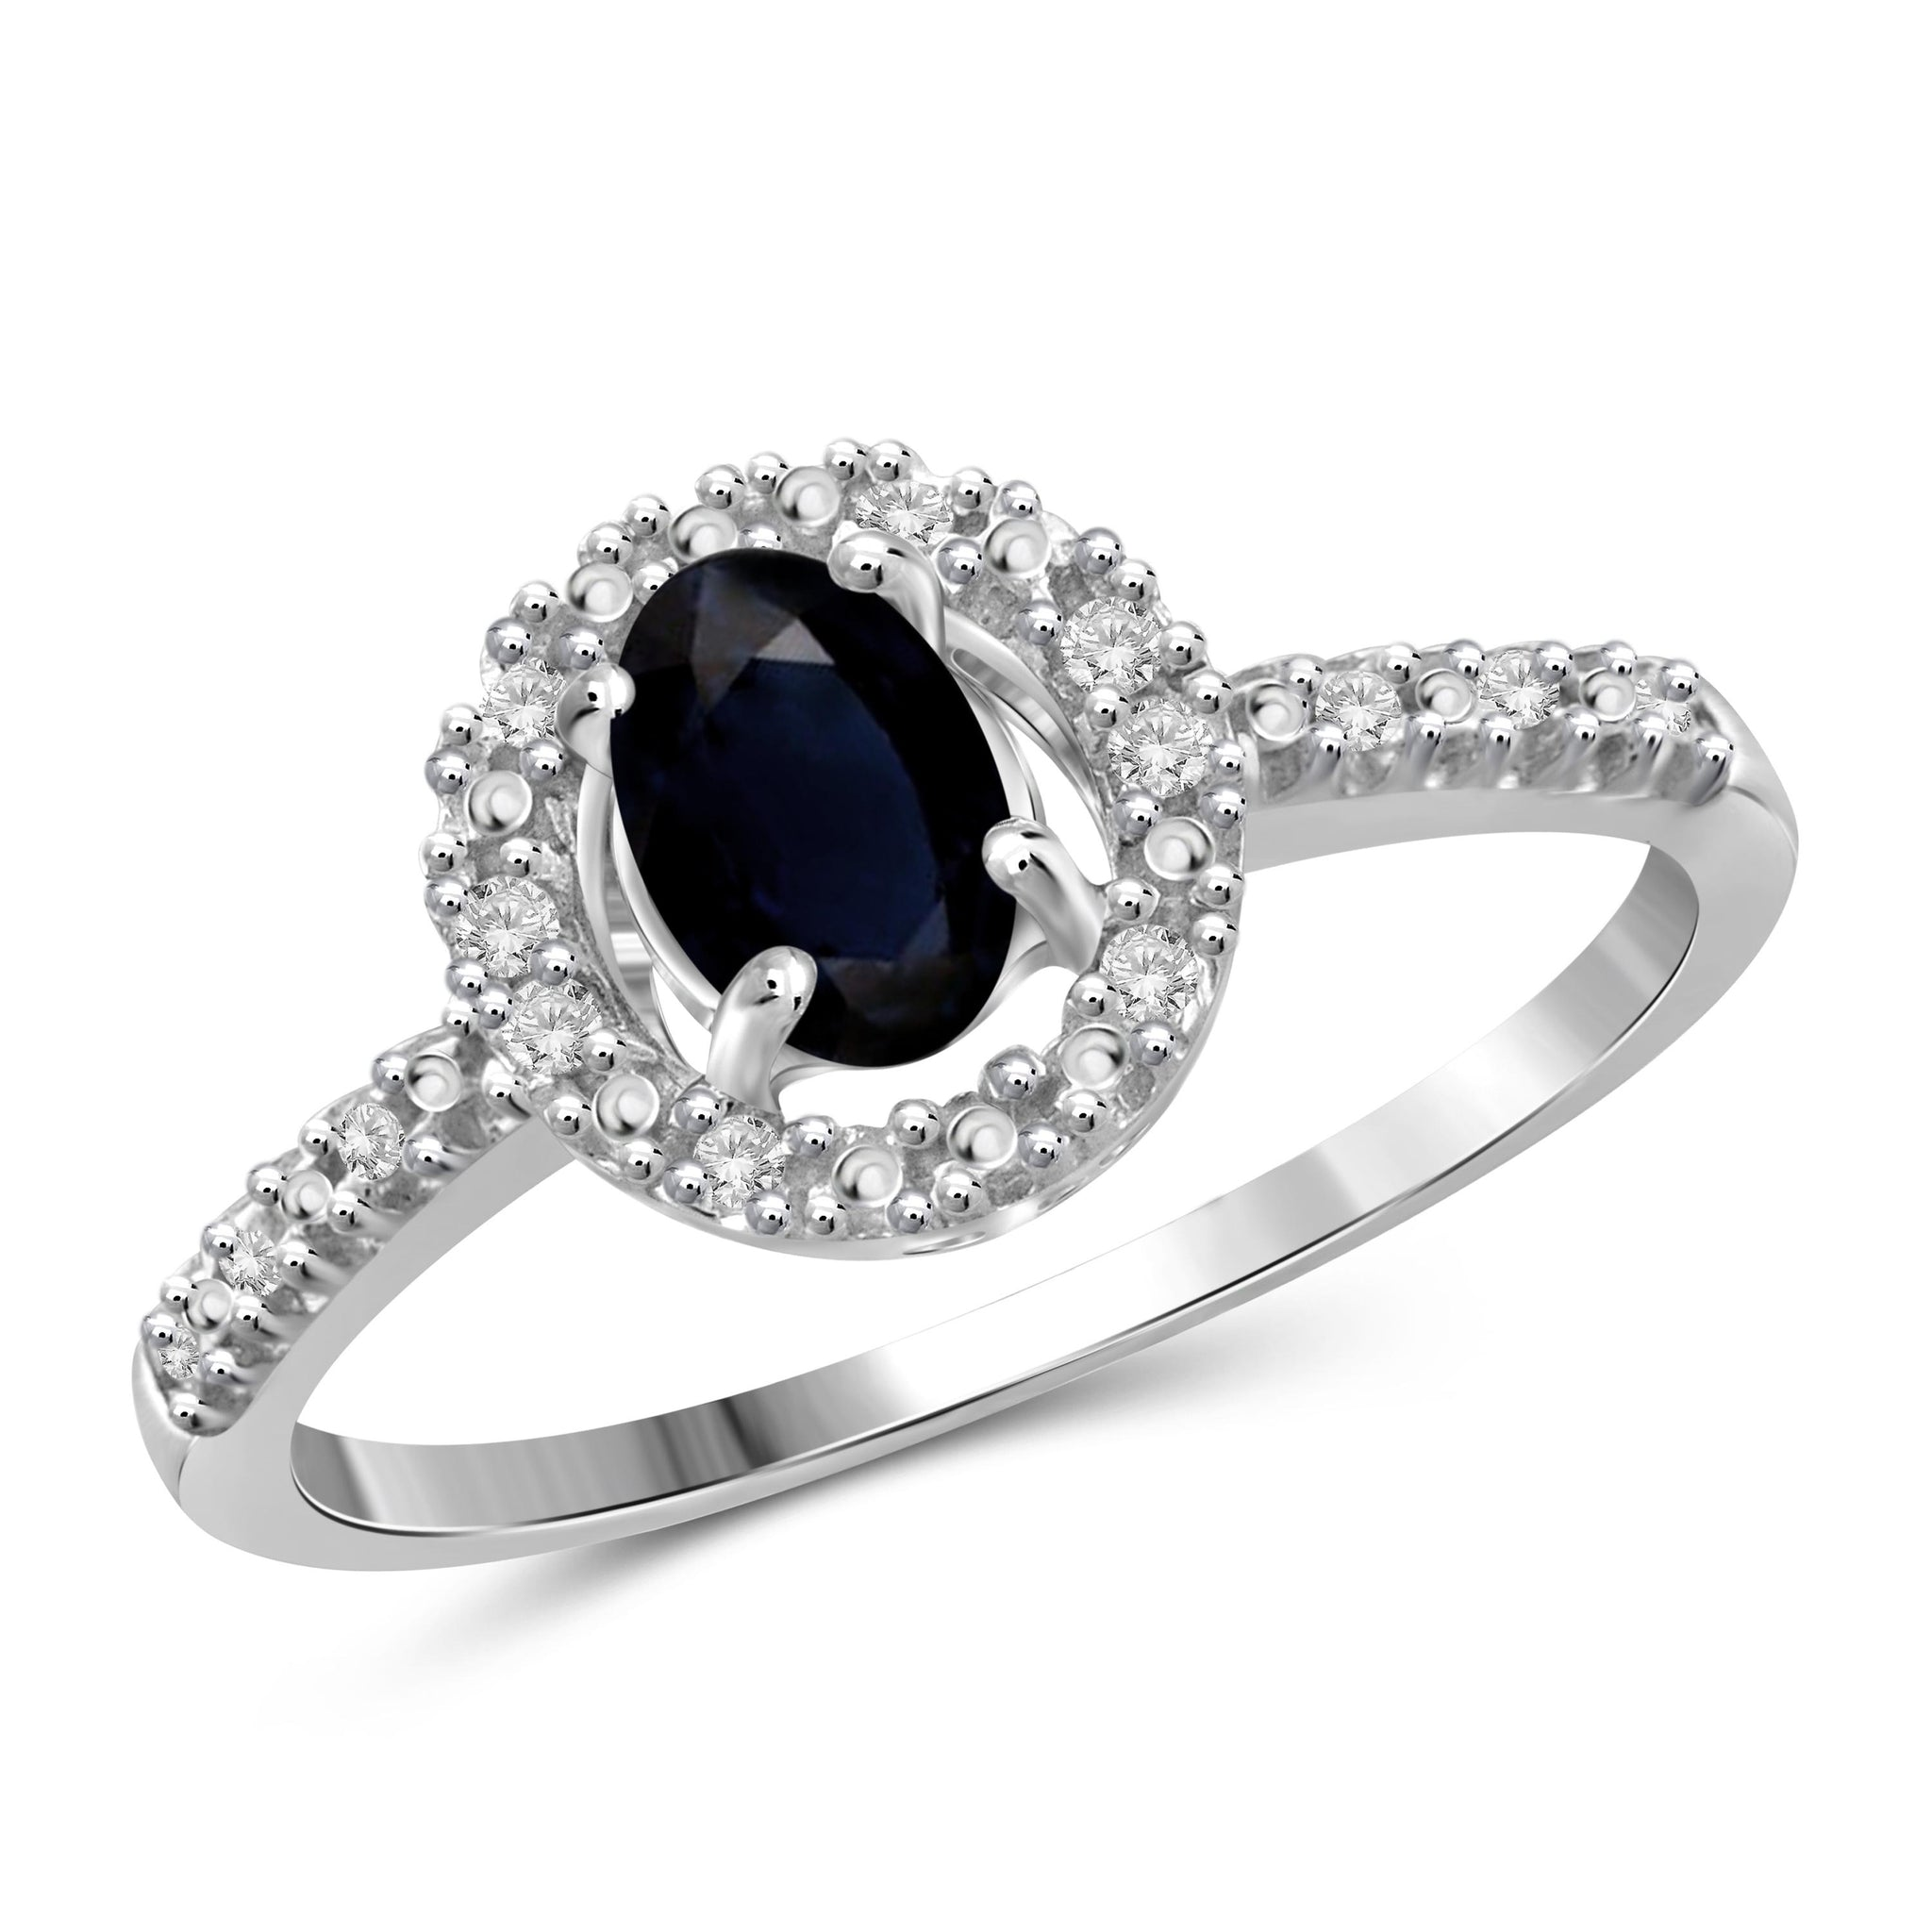 JewelonFire 0.60 Carat T.G.W. Sapphire and 1/20 ctw White Diamond Sterling Silver Ring - Assorted Colors